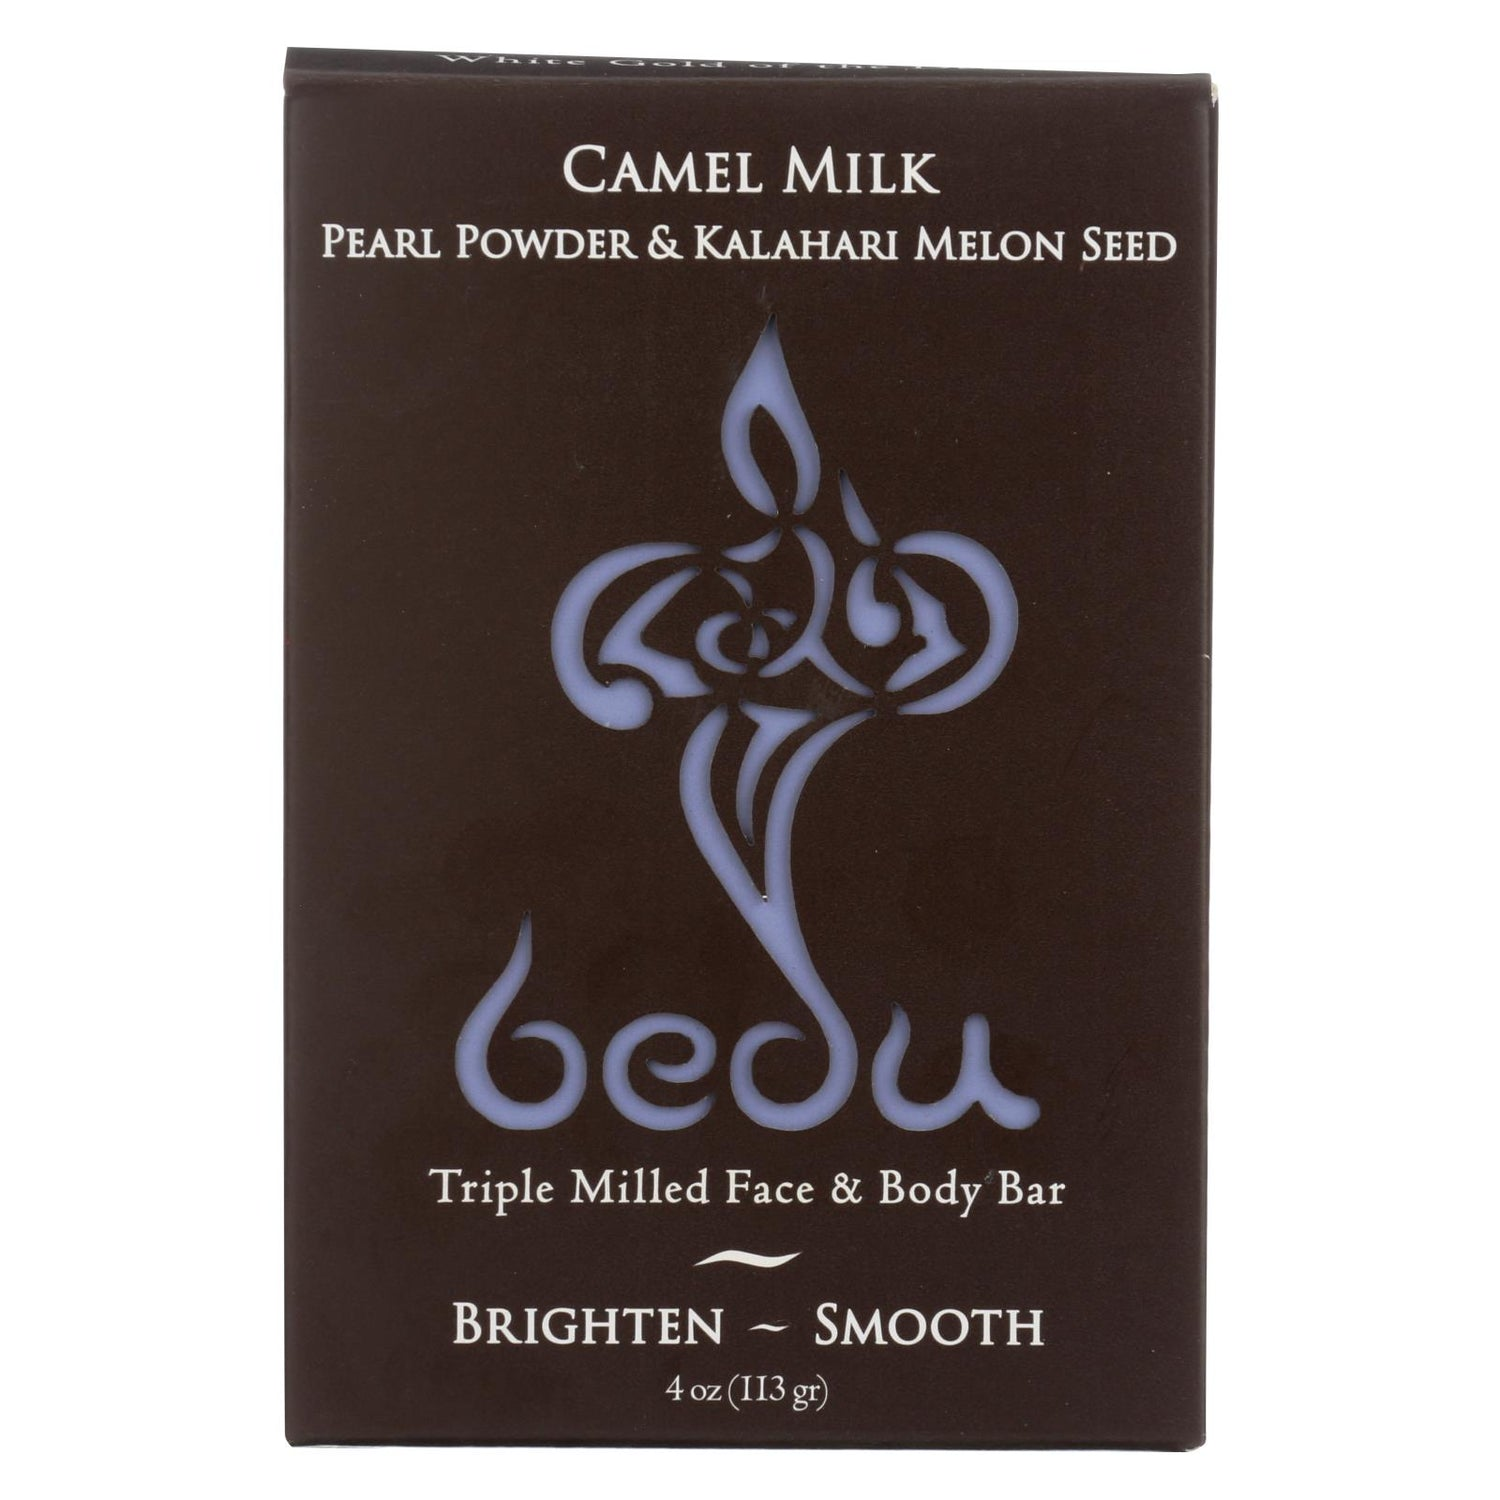 Bedu Face And Body Bar - Pearl Powder And Kalahari Melon Seed - Case Of 6 - 4 Oz.